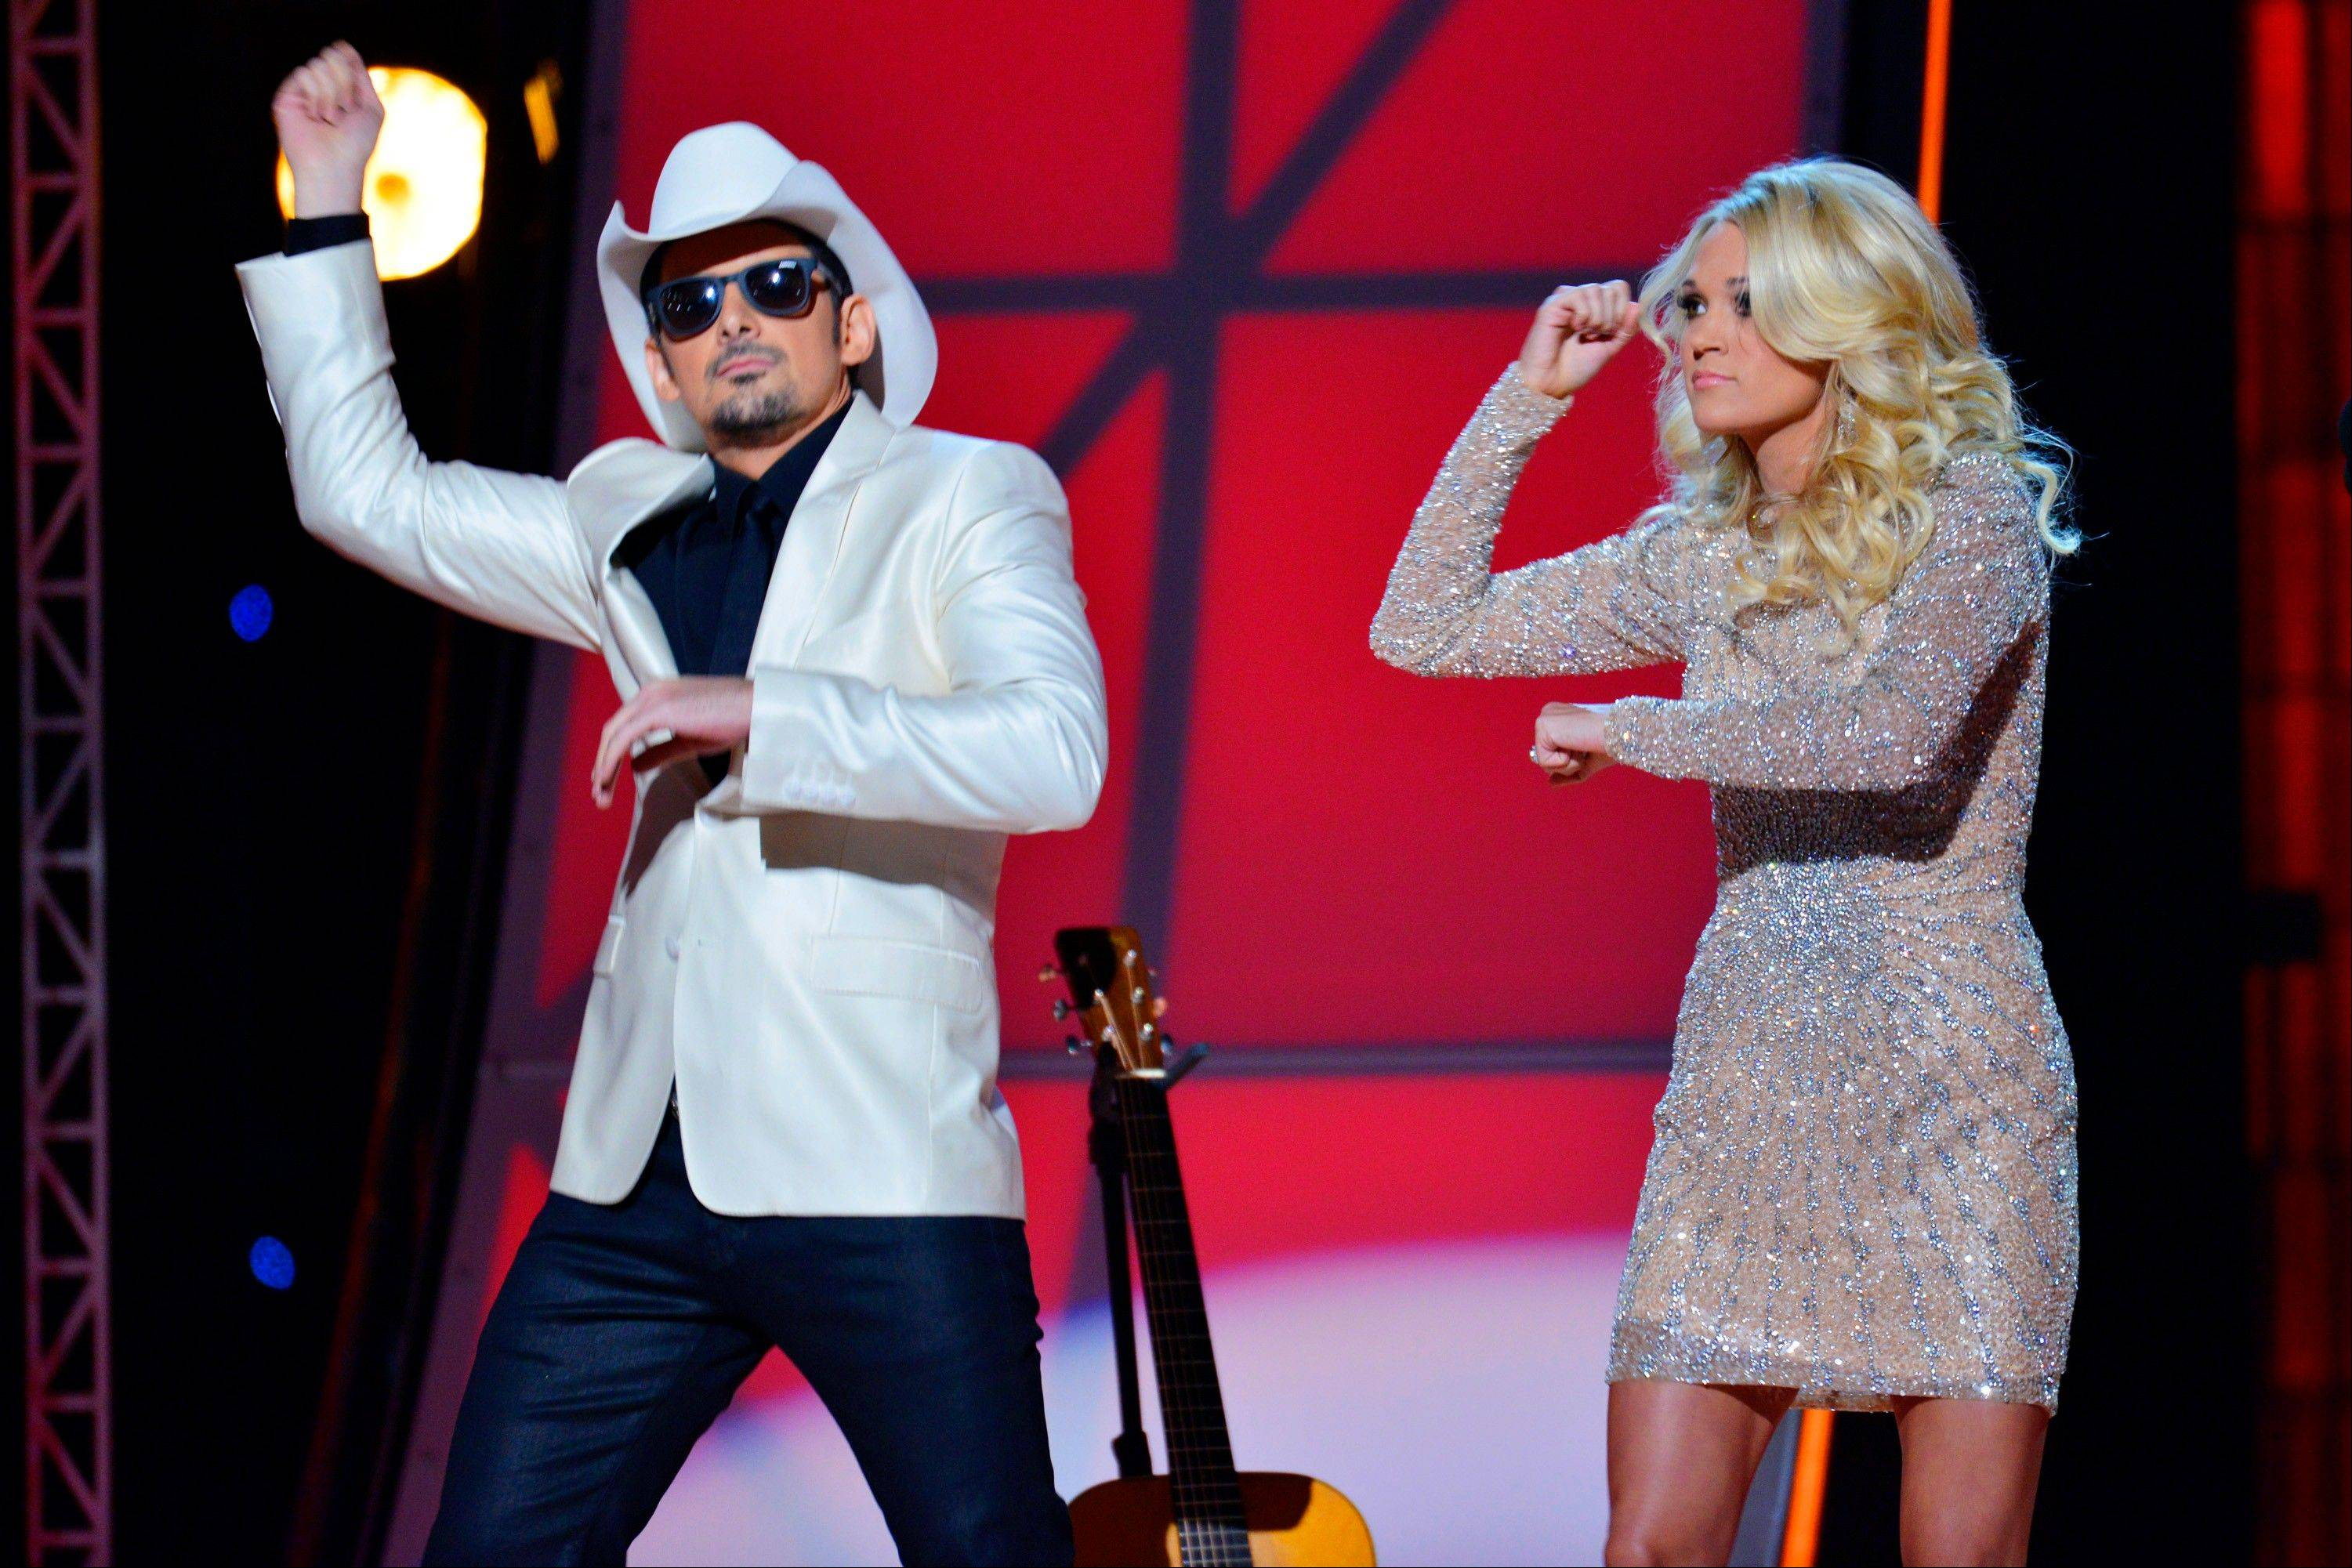 This image released by American Broadcasting Companies, Inc. shows hosts Brad Paisley, left, and Carrie Underwood as they mimic the Gangnam-style dance by South Korean rapper PSY, at the 46th Annual Country Music Awards at the Bridgestone Arena on Thursday, Nov. 1, 2012, in Nashville, Tenn.